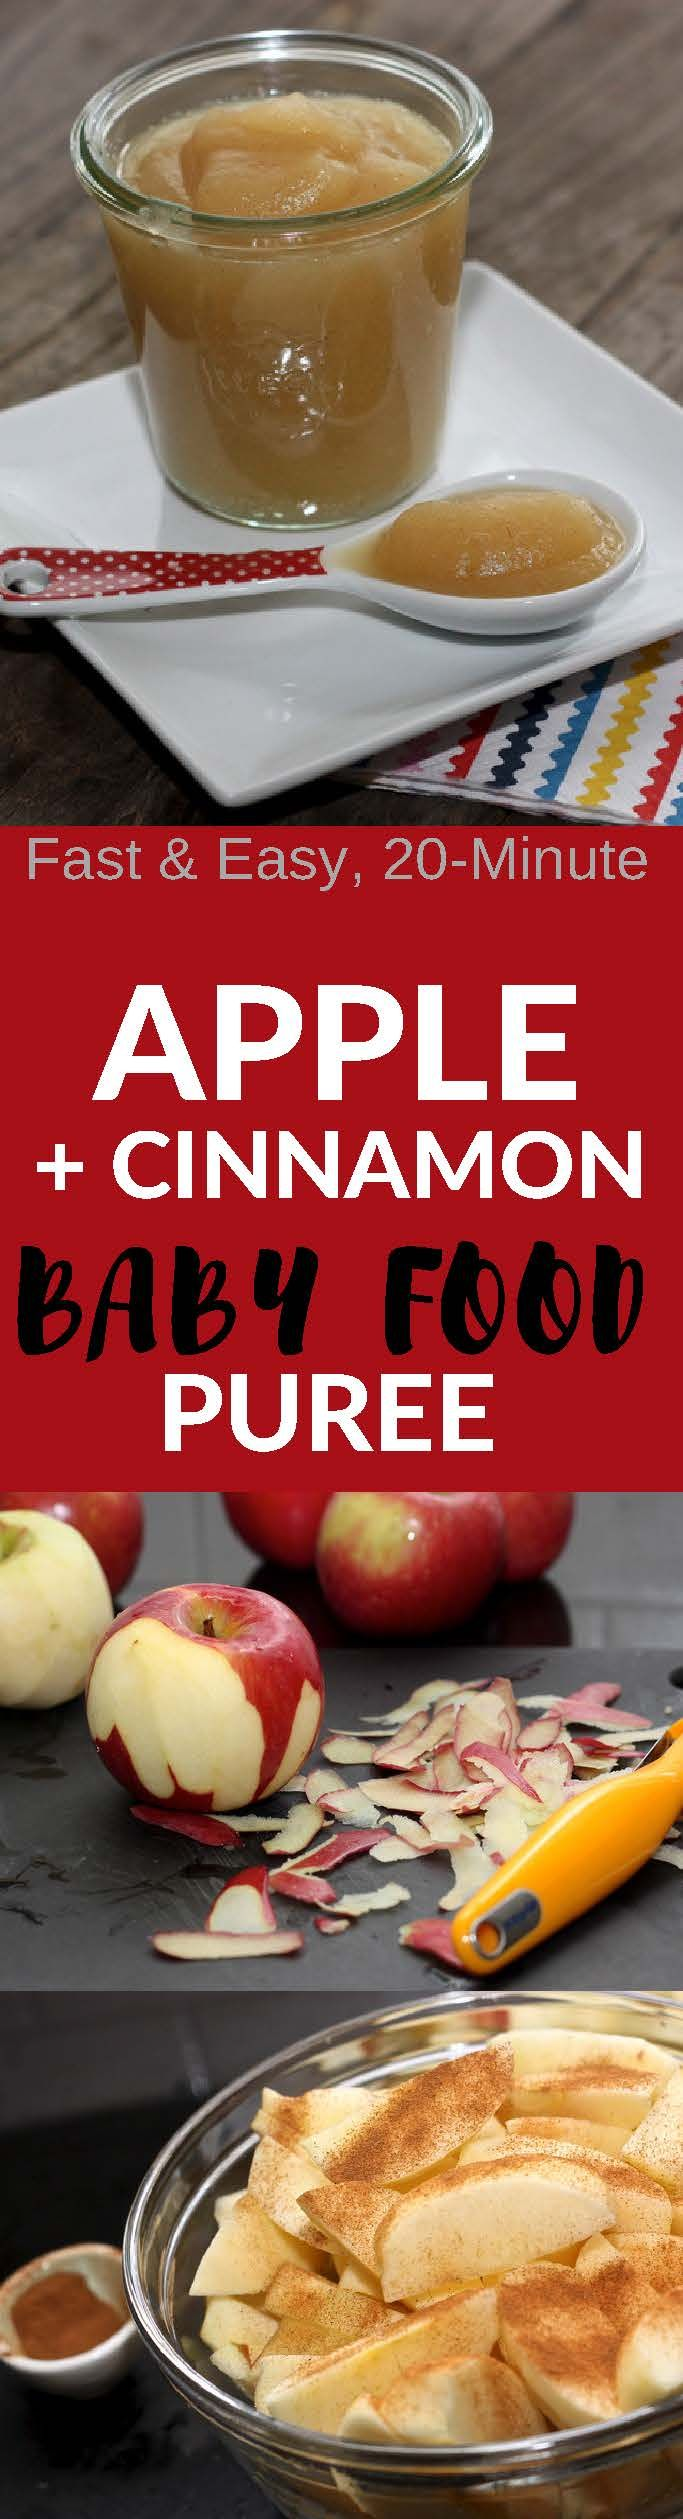 This easy and delicious Apple + Cinnamon Baby Food Puree will make your baby want to eat all day!